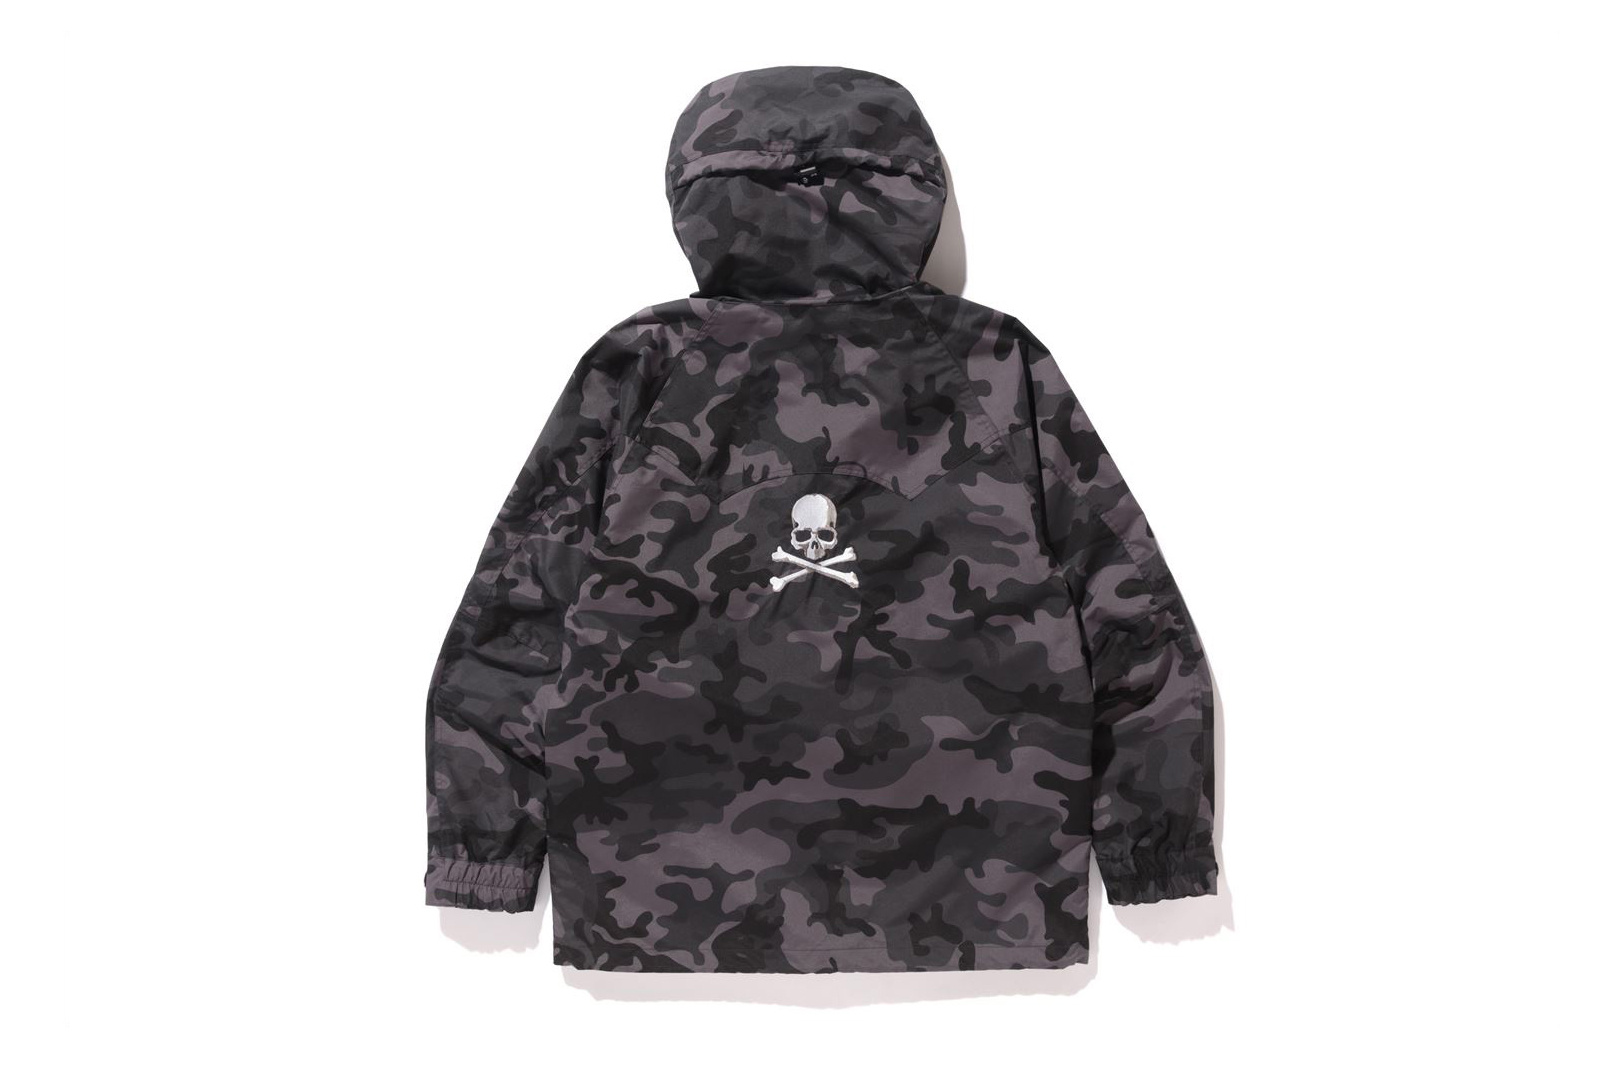 bape-x-mastermind-japan-2016-fall-winter-collaboration-0002